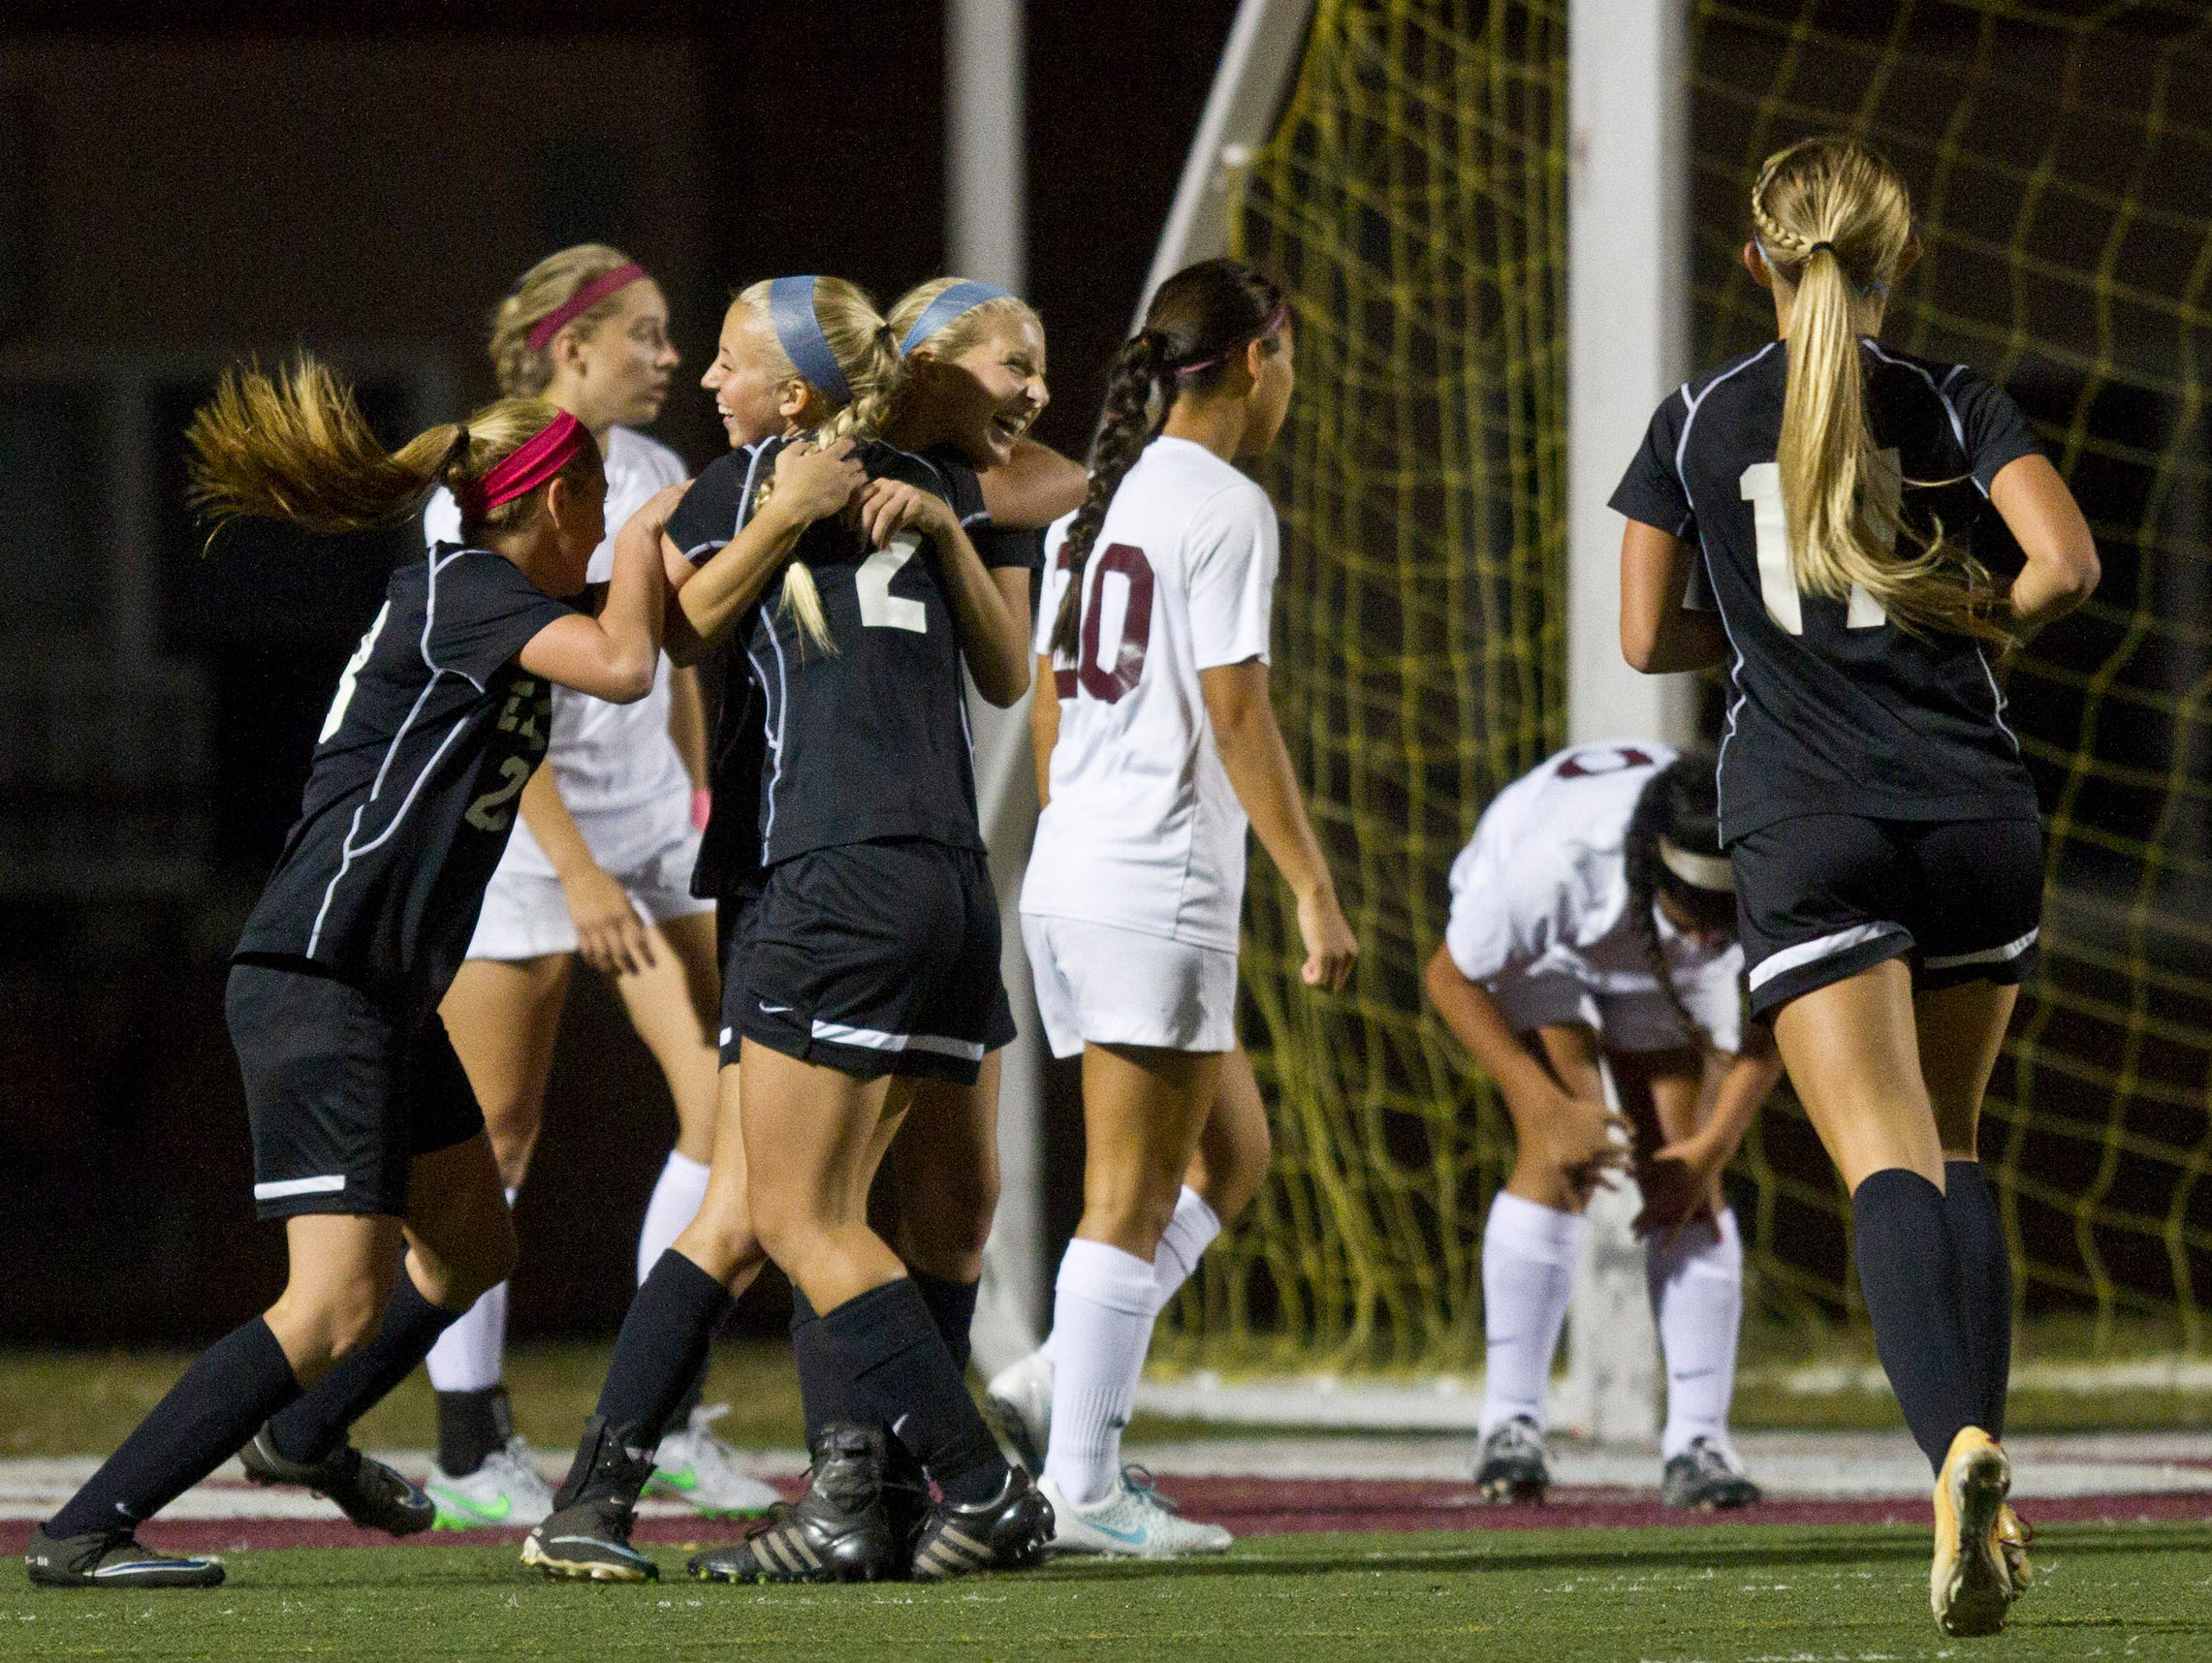 Toms River East celebrates a goal by Kylie Meola. Toms River East vs Toms River South soccer. Toms River, NJ Tuesday, October 13, 2015 @dhoodhood